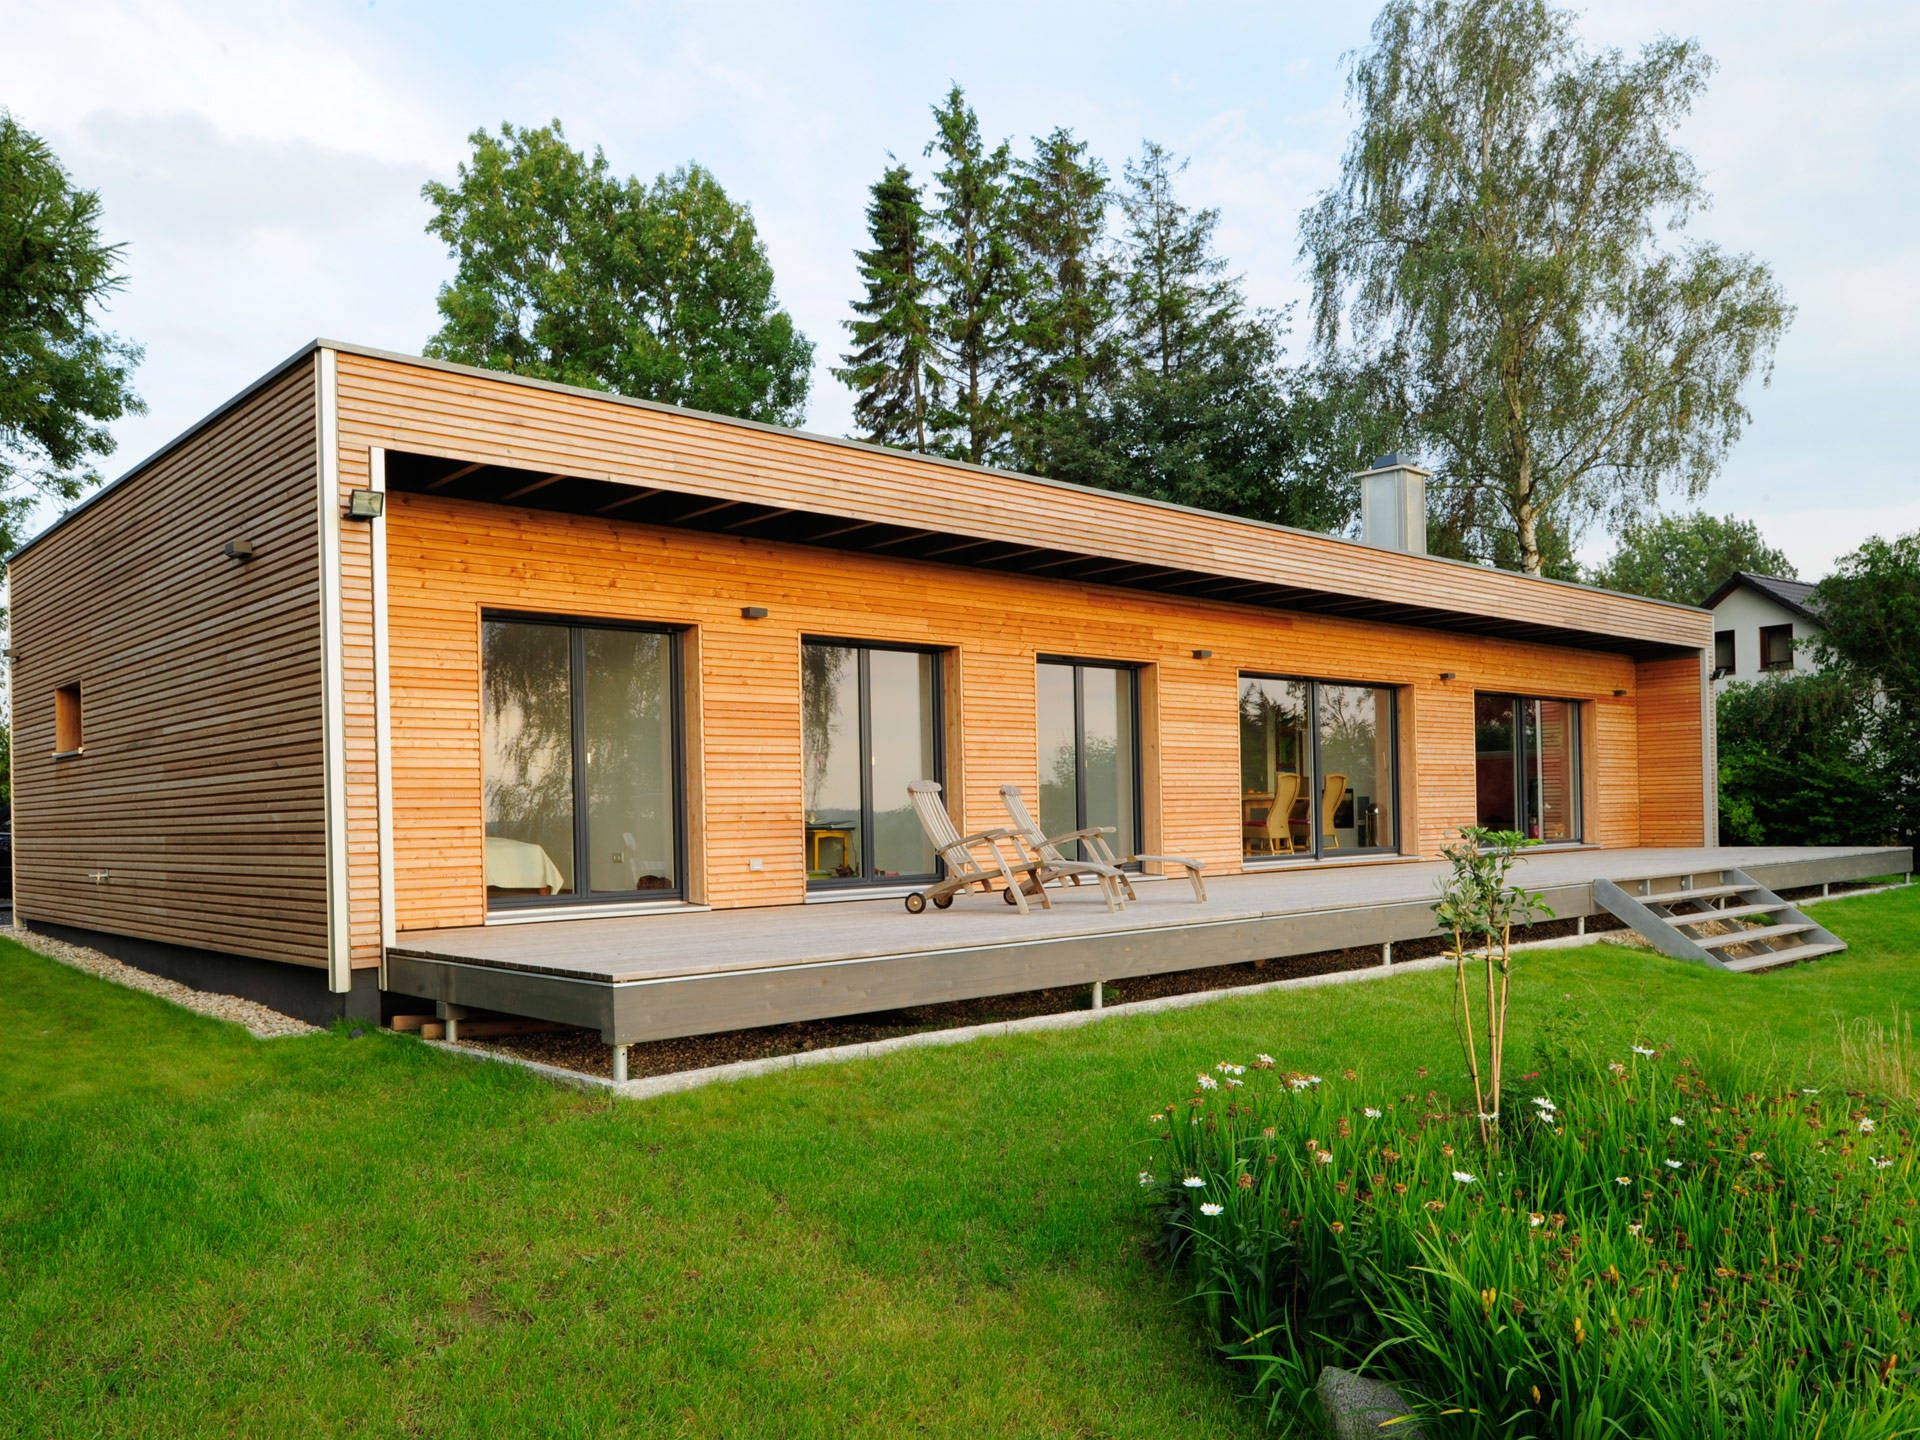 Bungalow Holzhaus Moderner Bungalow Haus House Bungalow Und Affordable Prefab Homes